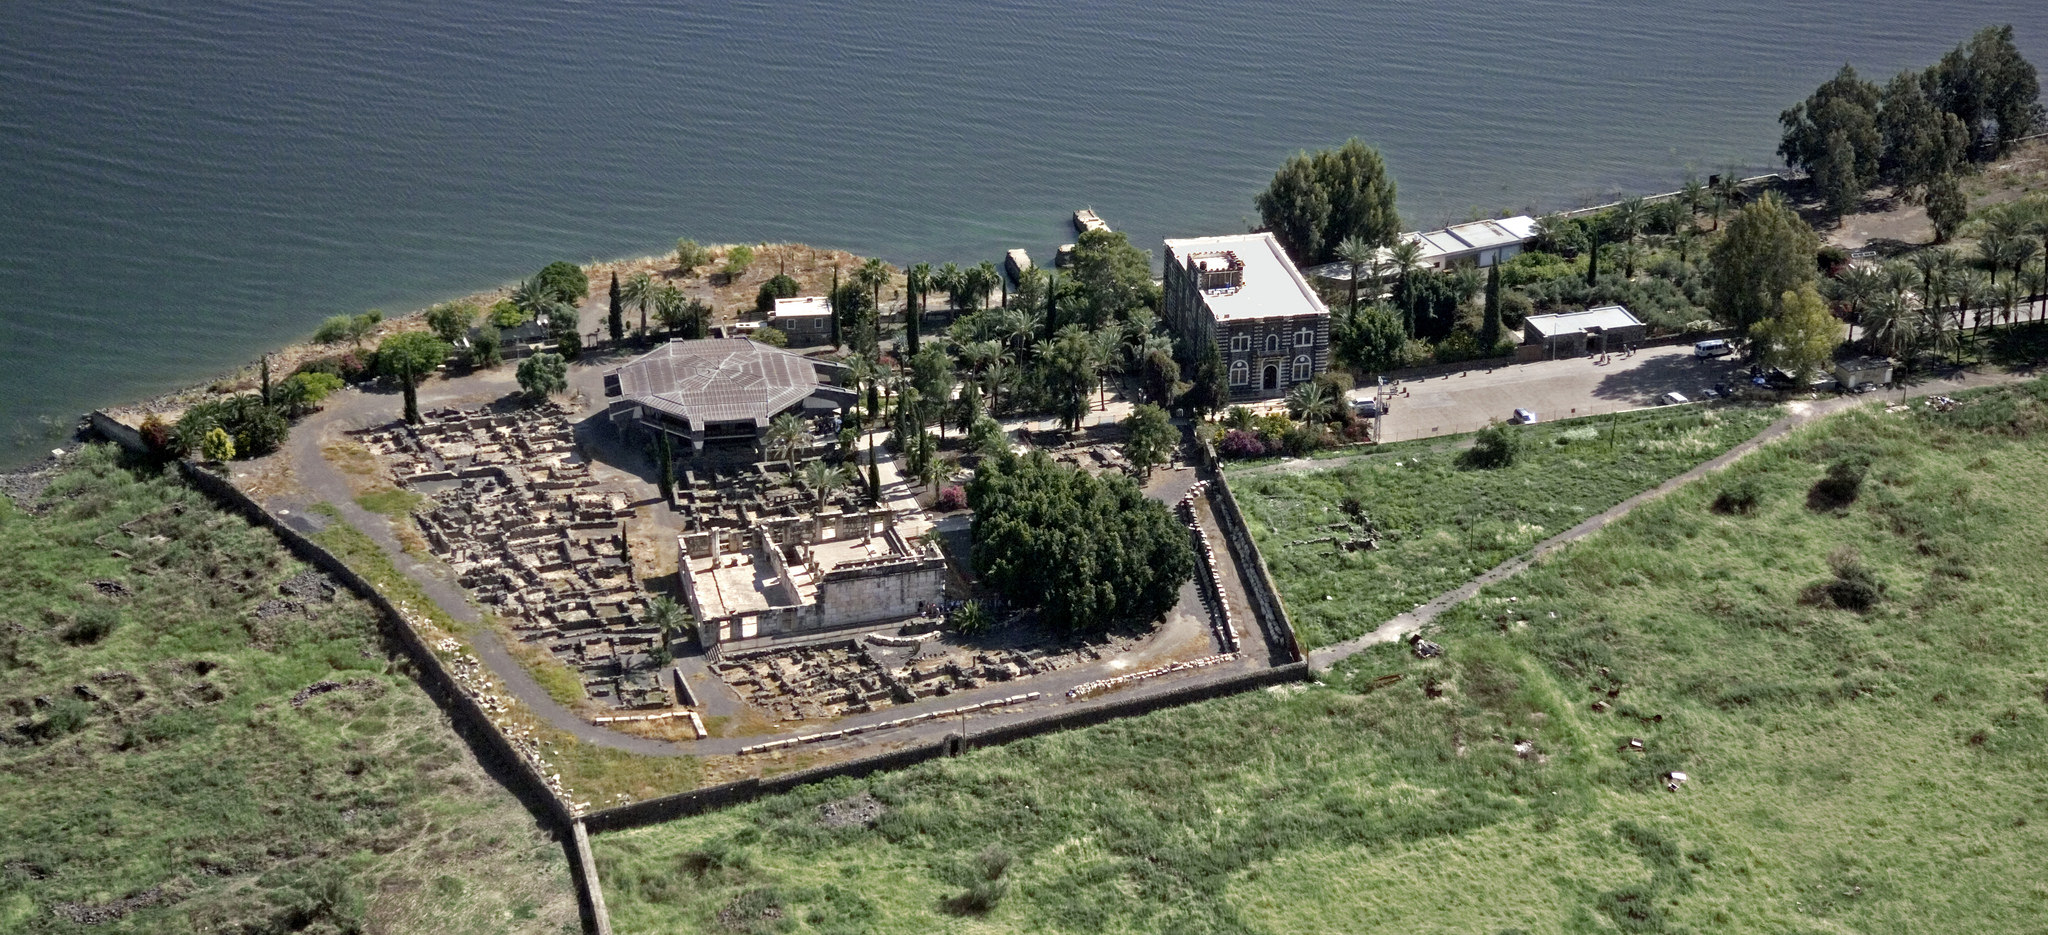 JCapernaum in the Galilee and the Lake of Galilee. An aerial view of the region